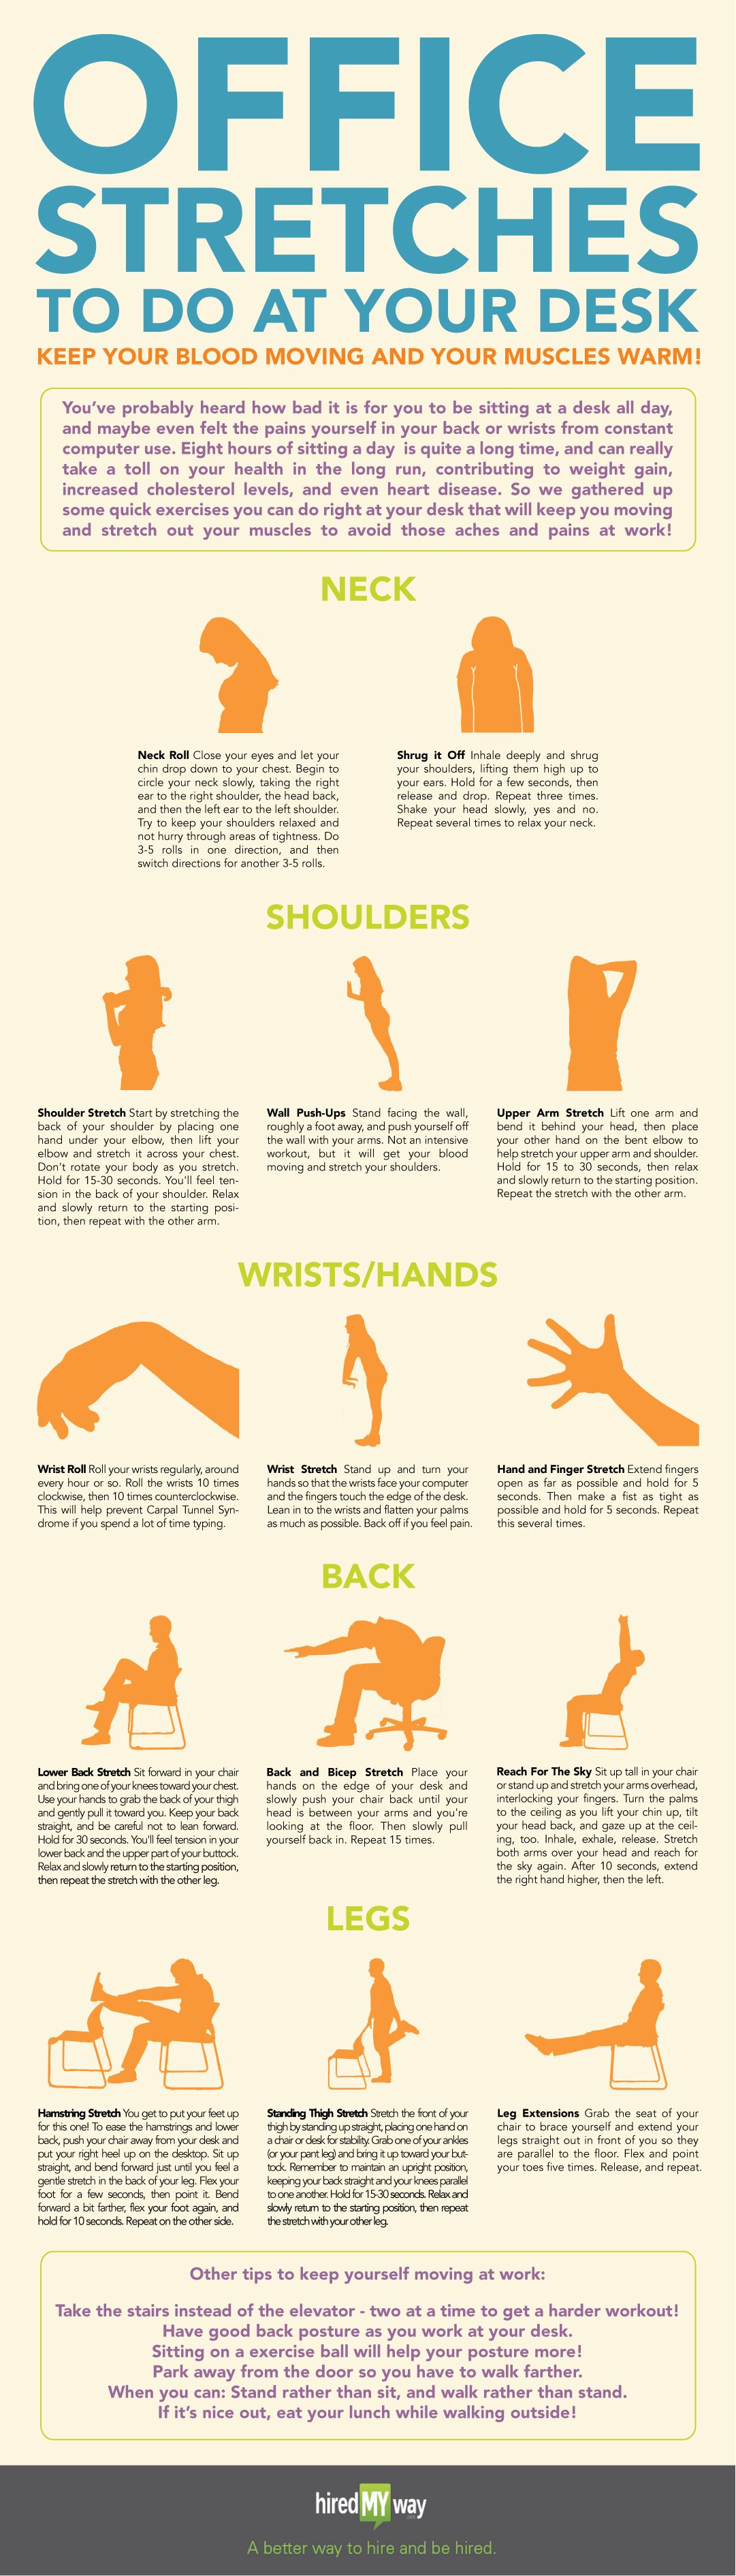 Office Stretches To Do At Your Desk By Hiredmyway Take Care Of